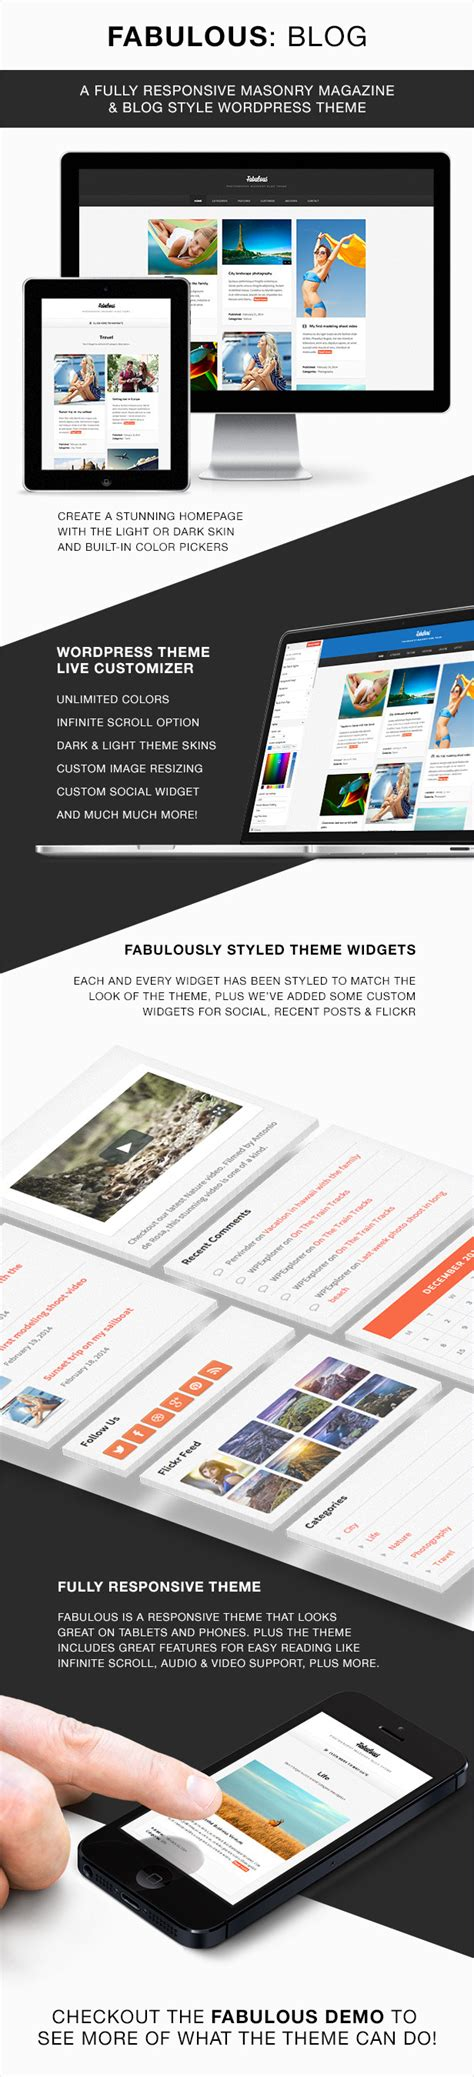 theme wordpress blog themeforest fabulous responsive masonry blog wordpress theme